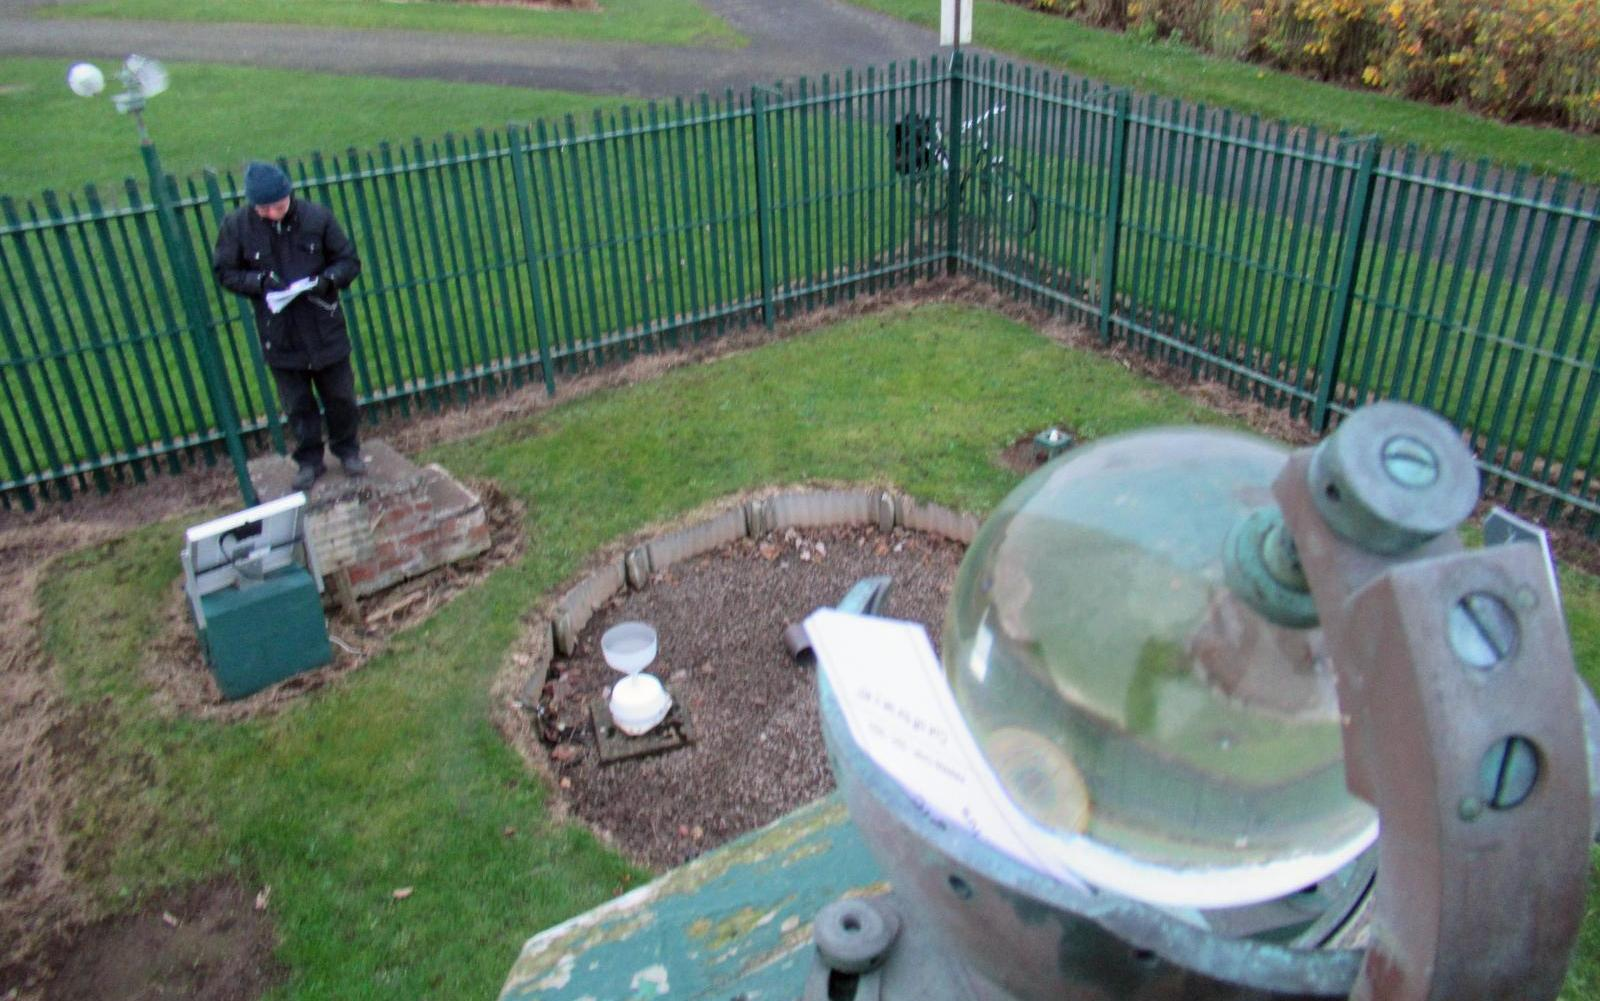 Weather enclosure for daily observations